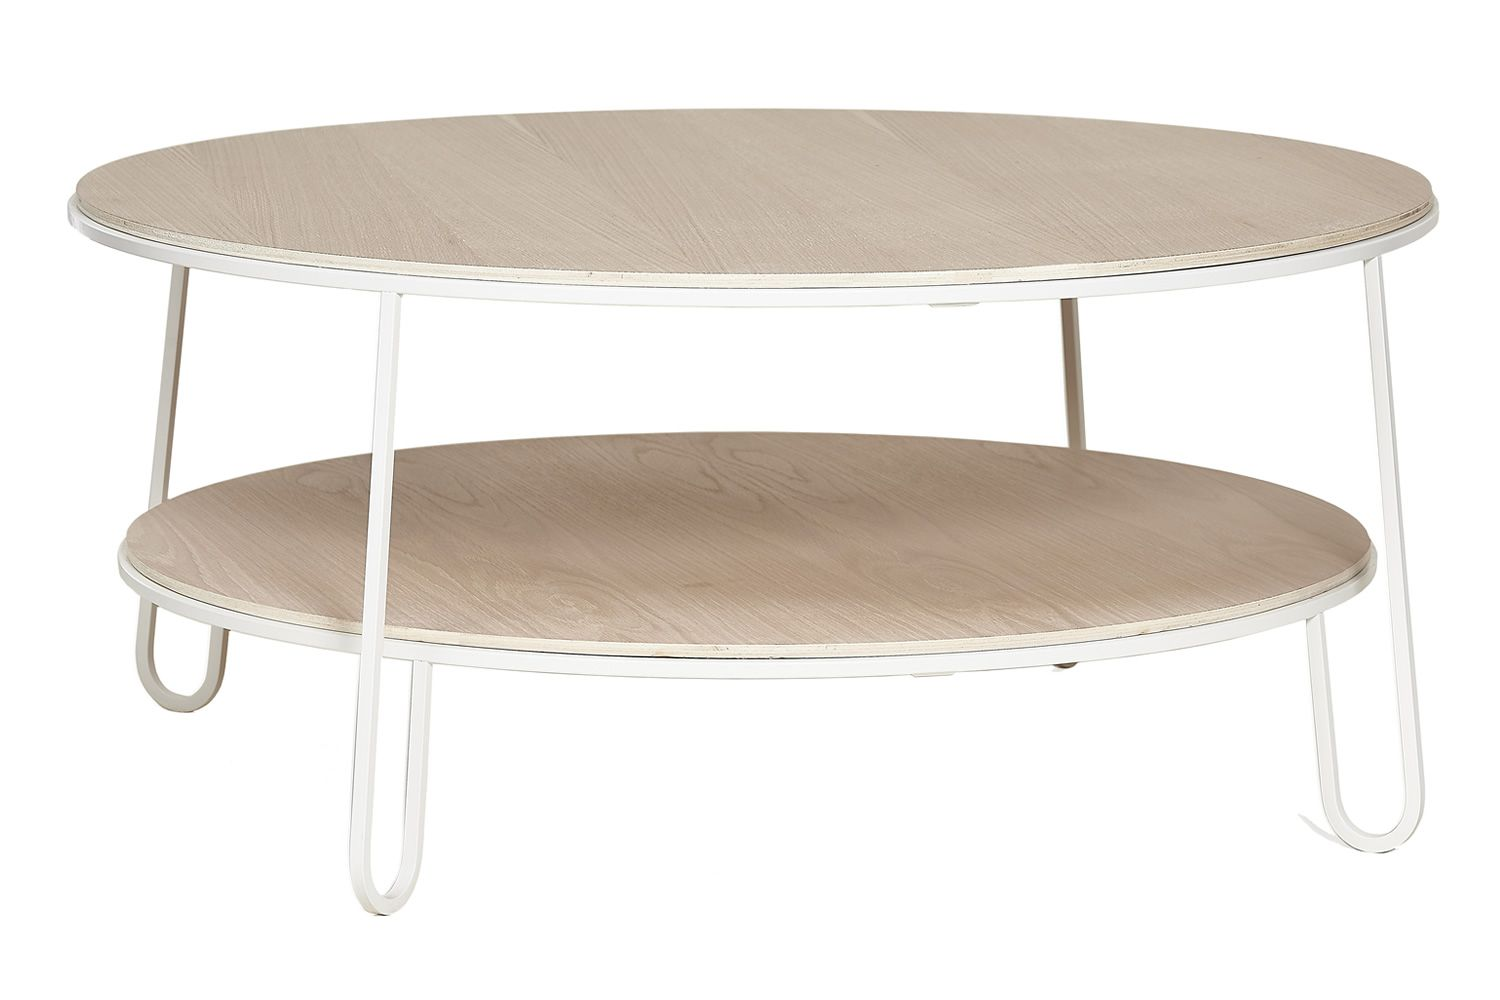 Table Basse Bois Verre Design Table Basse Bois Metal Blanc Table Basse Ronde En Verre Design